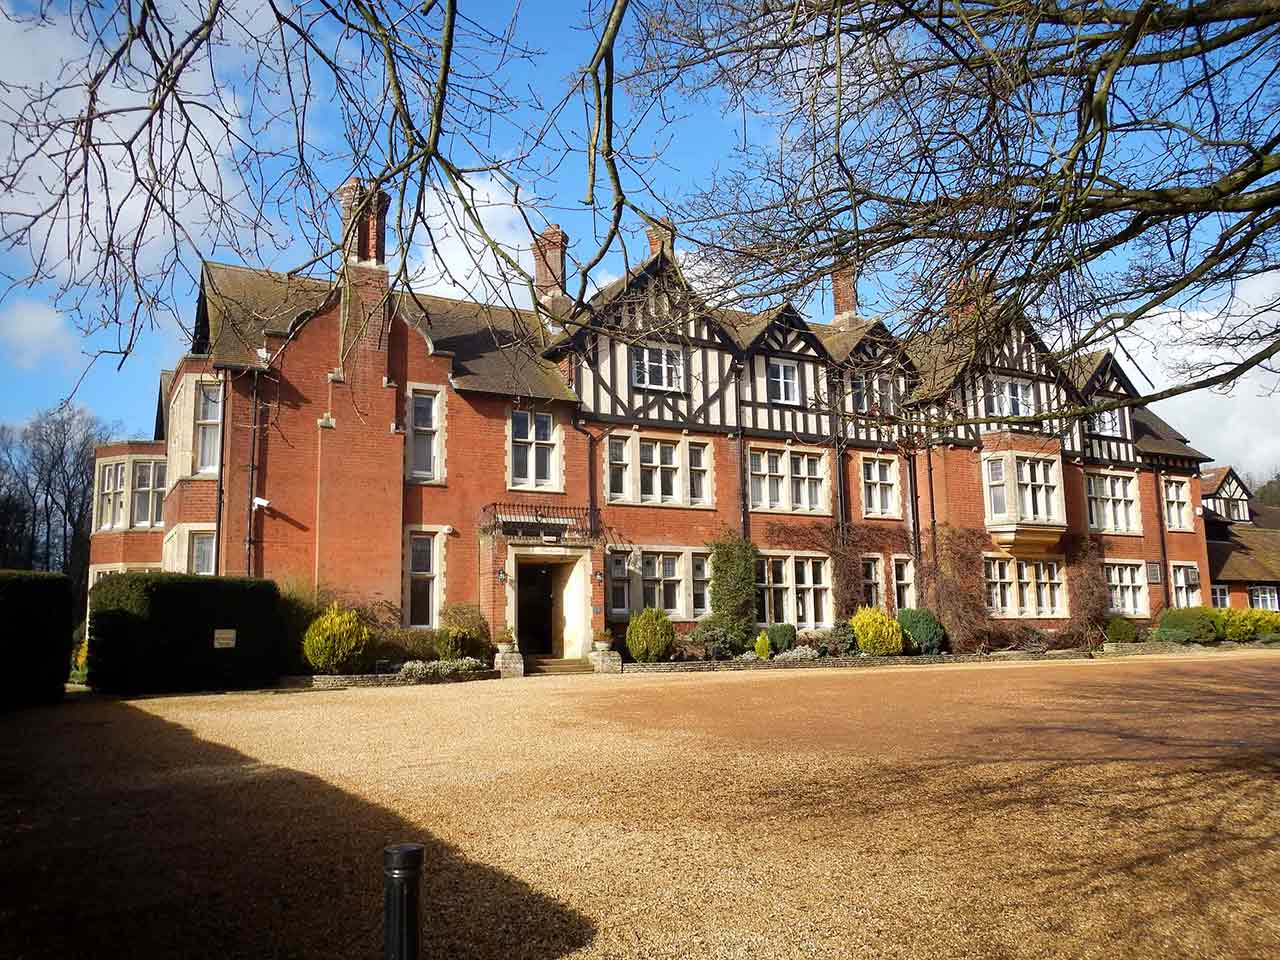 Foyer Hotel Cern : Scalford hall hotel enters administration with jobs at